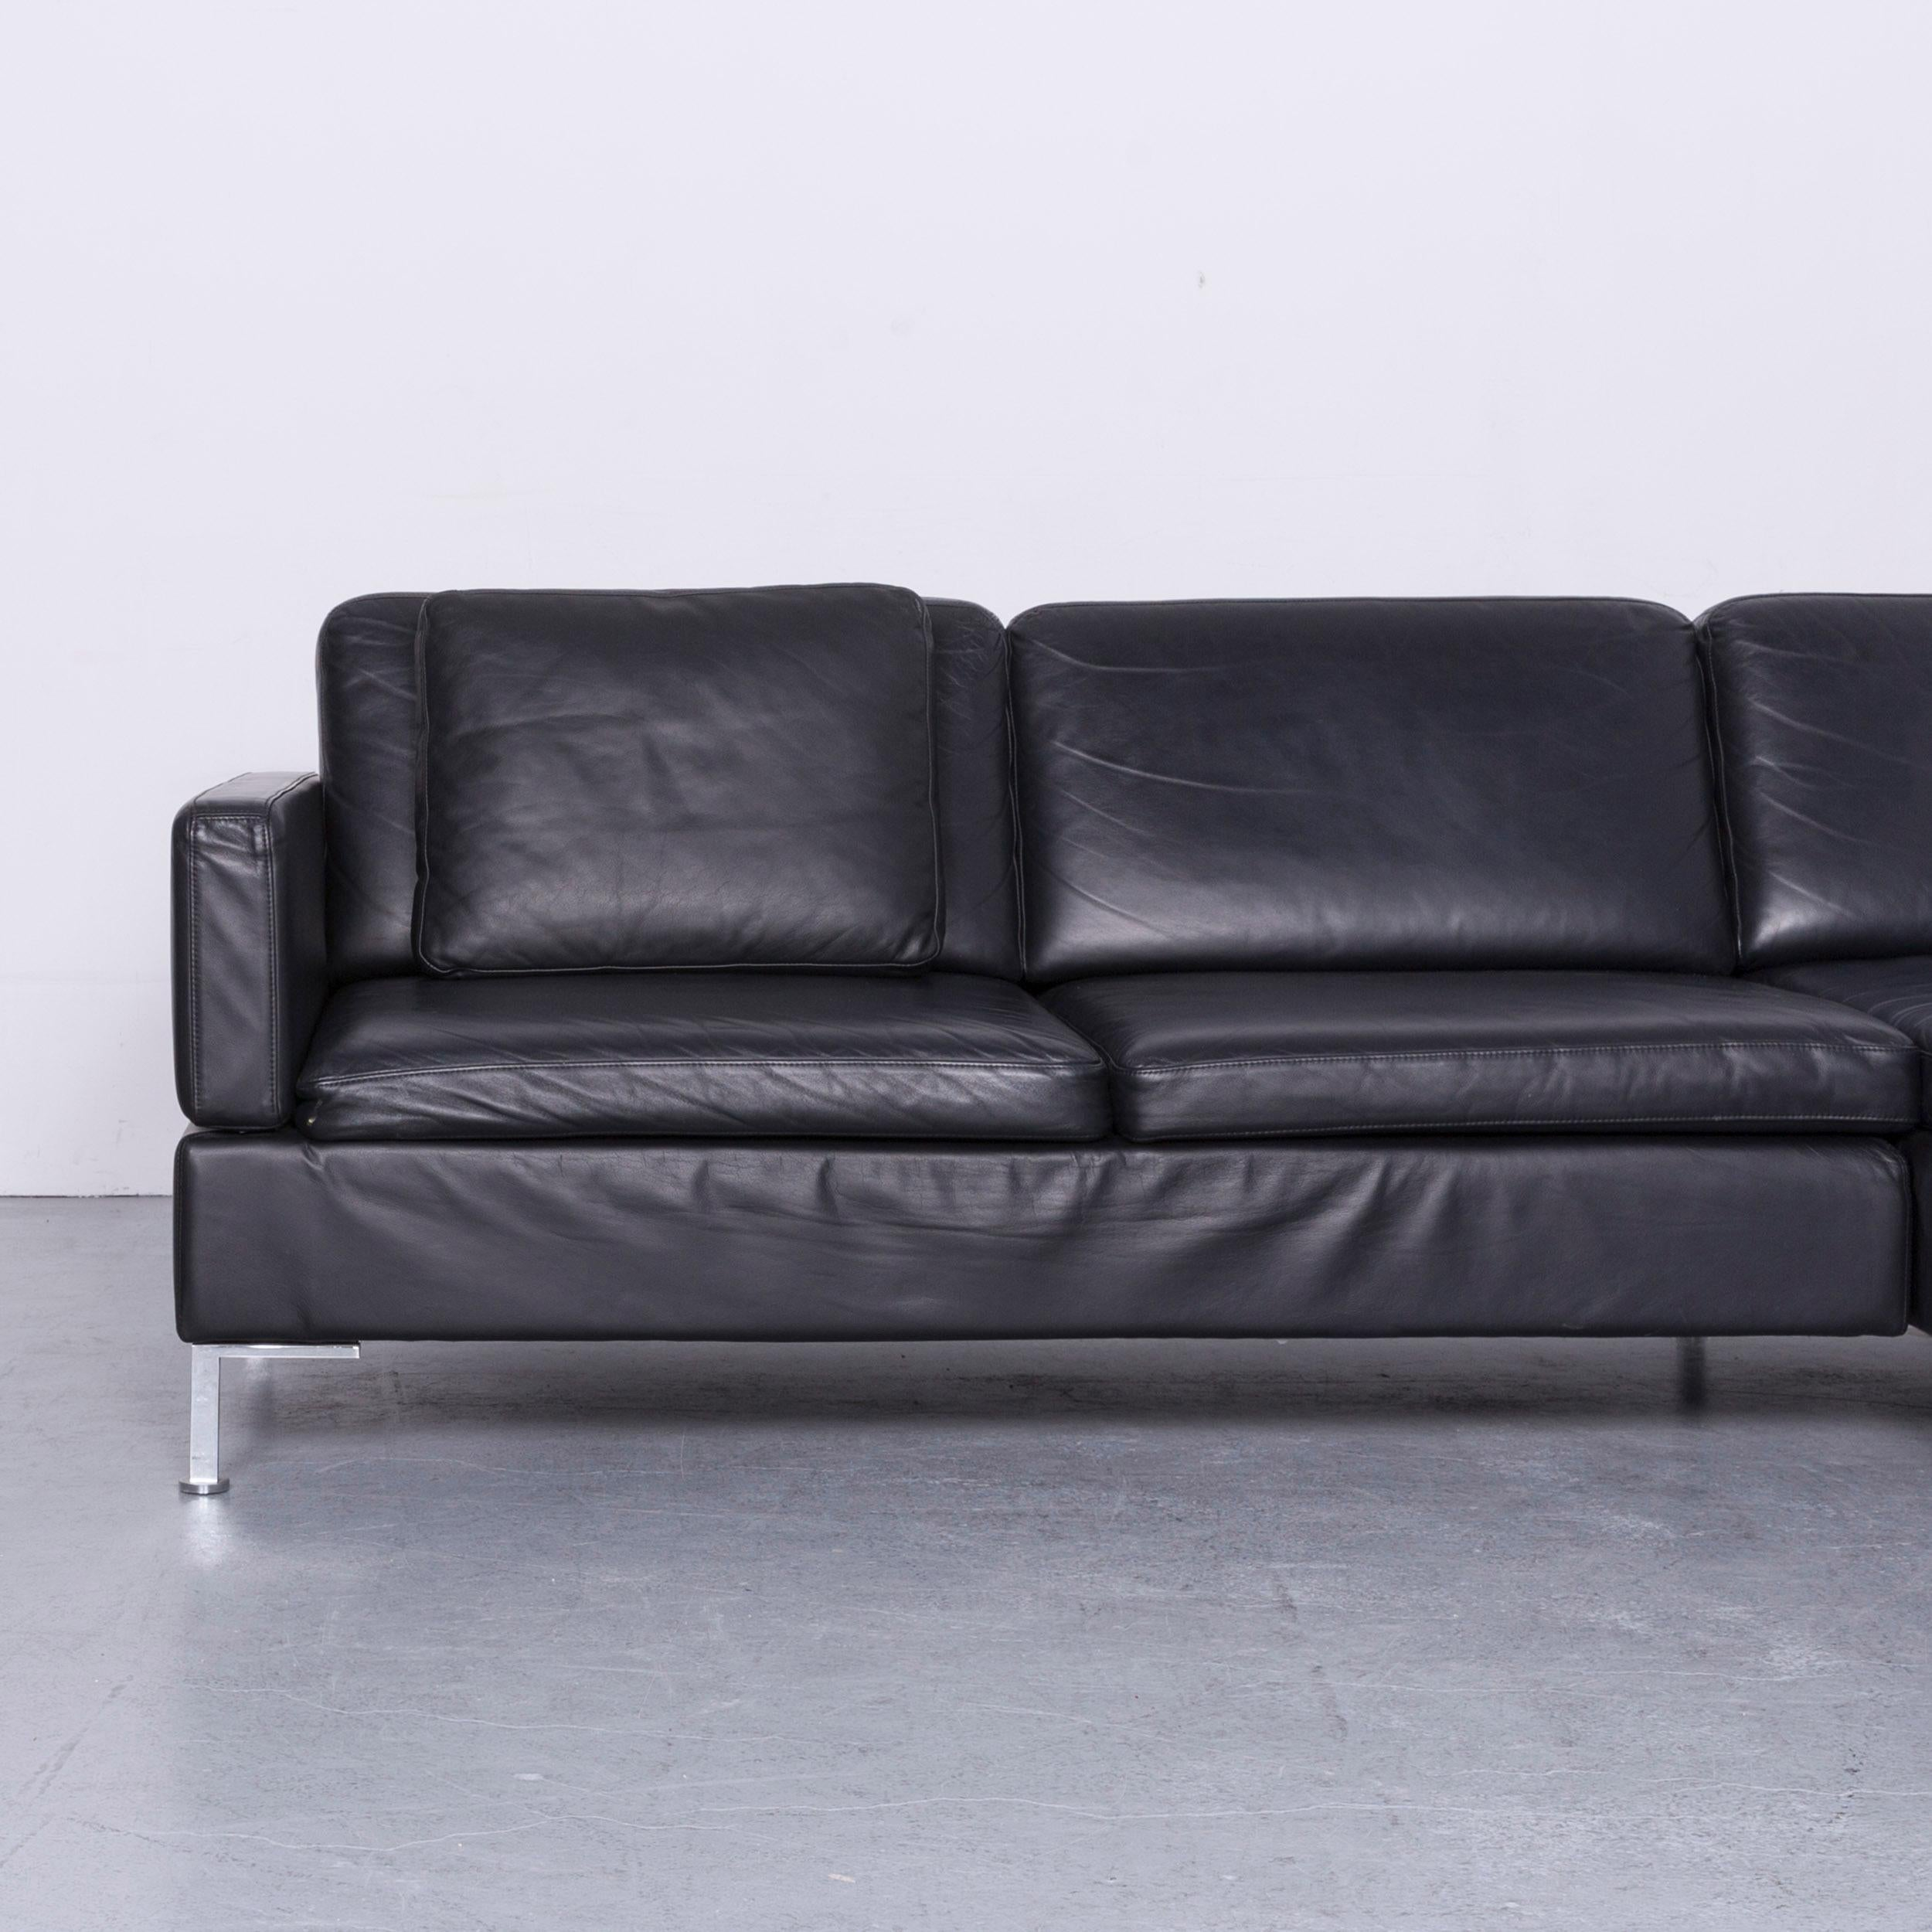 Brühl Und Sippold Brühl Sippold Alba Designer Corner Sofa Black Leather Couch With Function